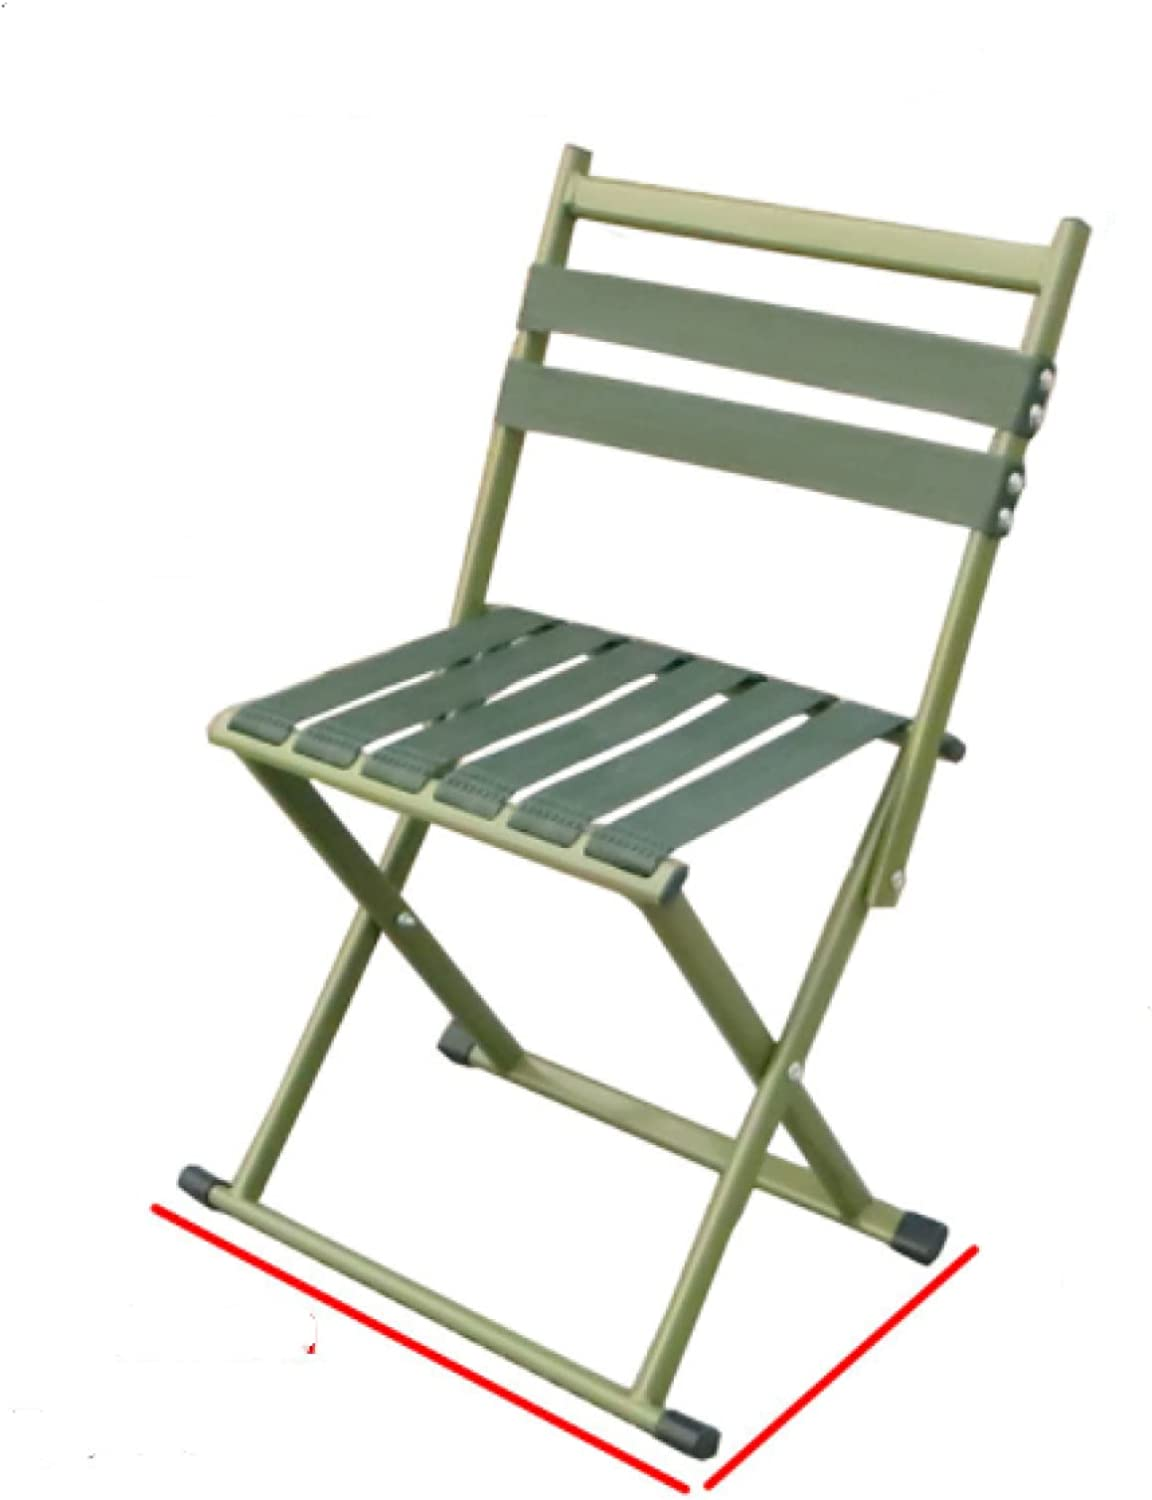 Small Folding Bargain Camping Chair Limited time cheap sale Seat P Stainless Metal Steel Comfort